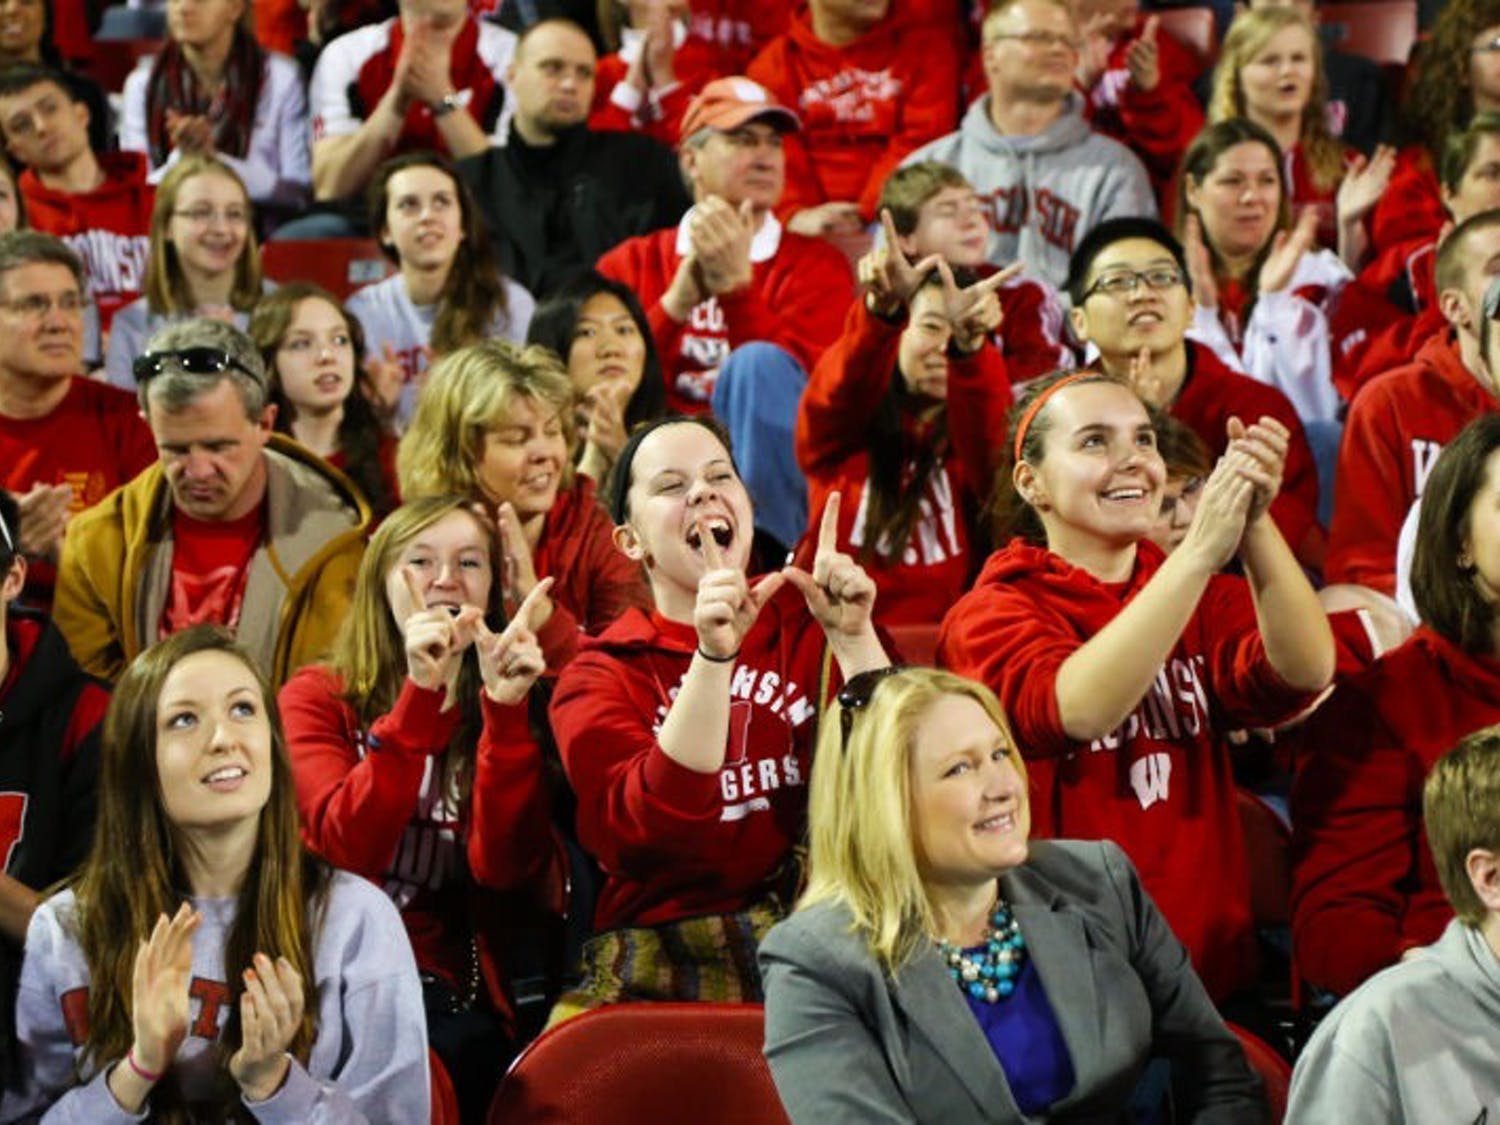 Badger fans gathered at Kohl Center Sunday March 30 to welcome home the men's basketball team after beating ASU in overtime and moving on to the Final Four.